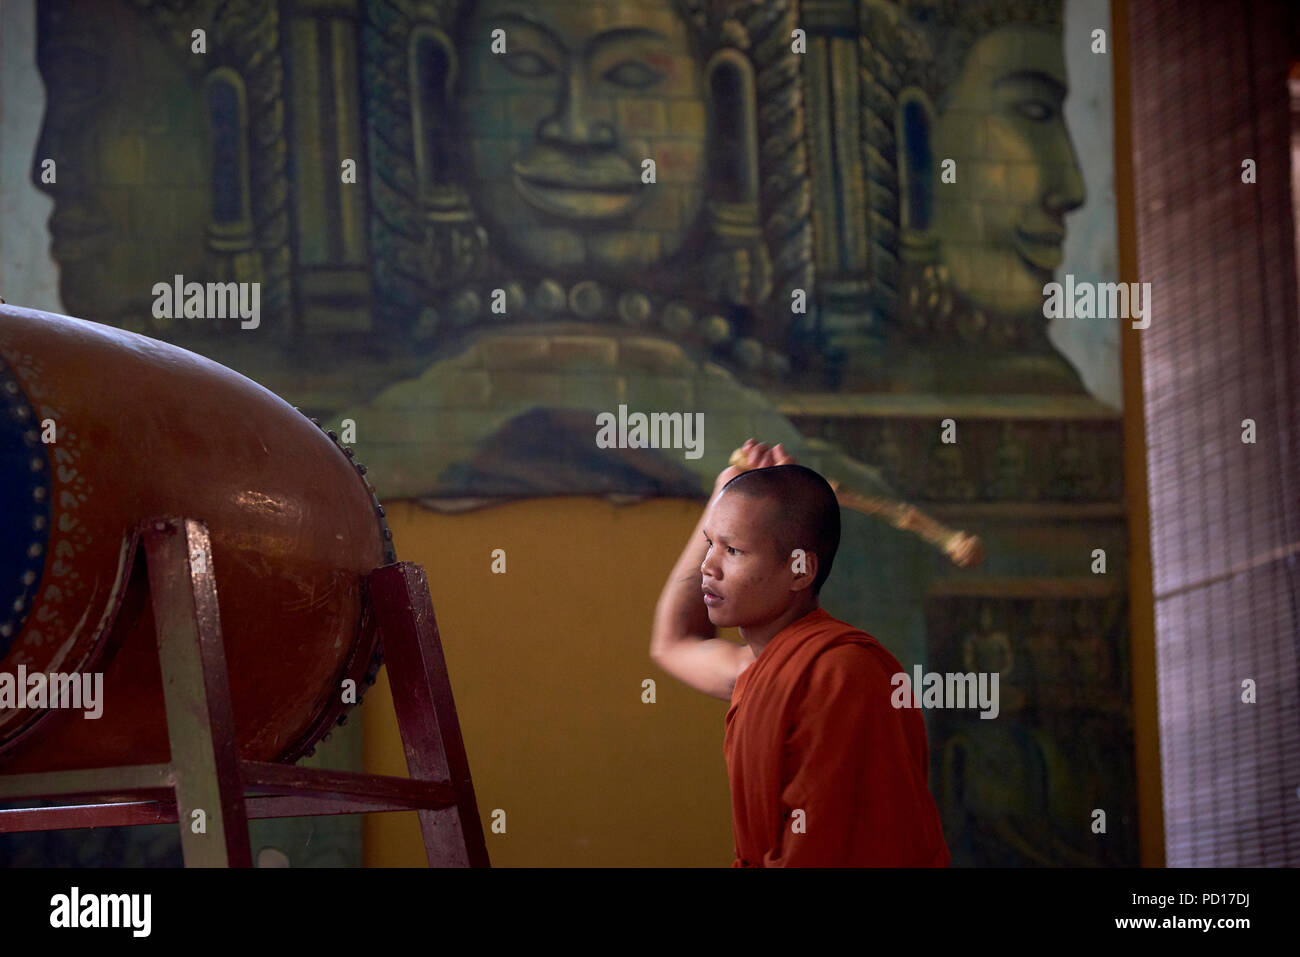 A young Buddhist monk playing a tambour during a ceremony at a monastery in Siem Reap, Cambodia, with faces of gods painted in a mural in the backgrou - Stock Image